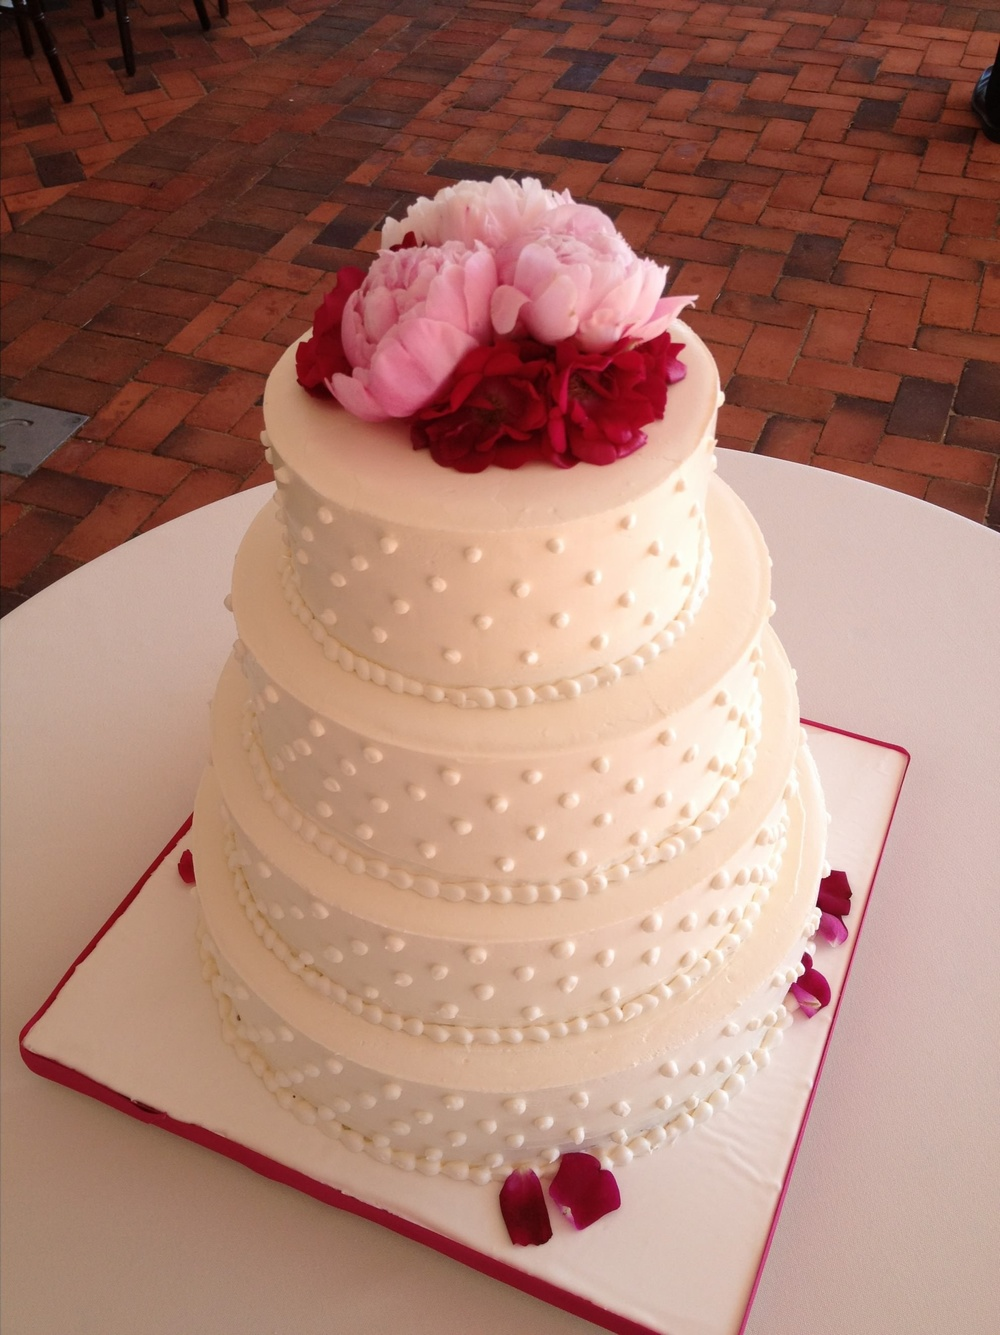 Wedding Specialty Cakes Vashon Island Baking Company